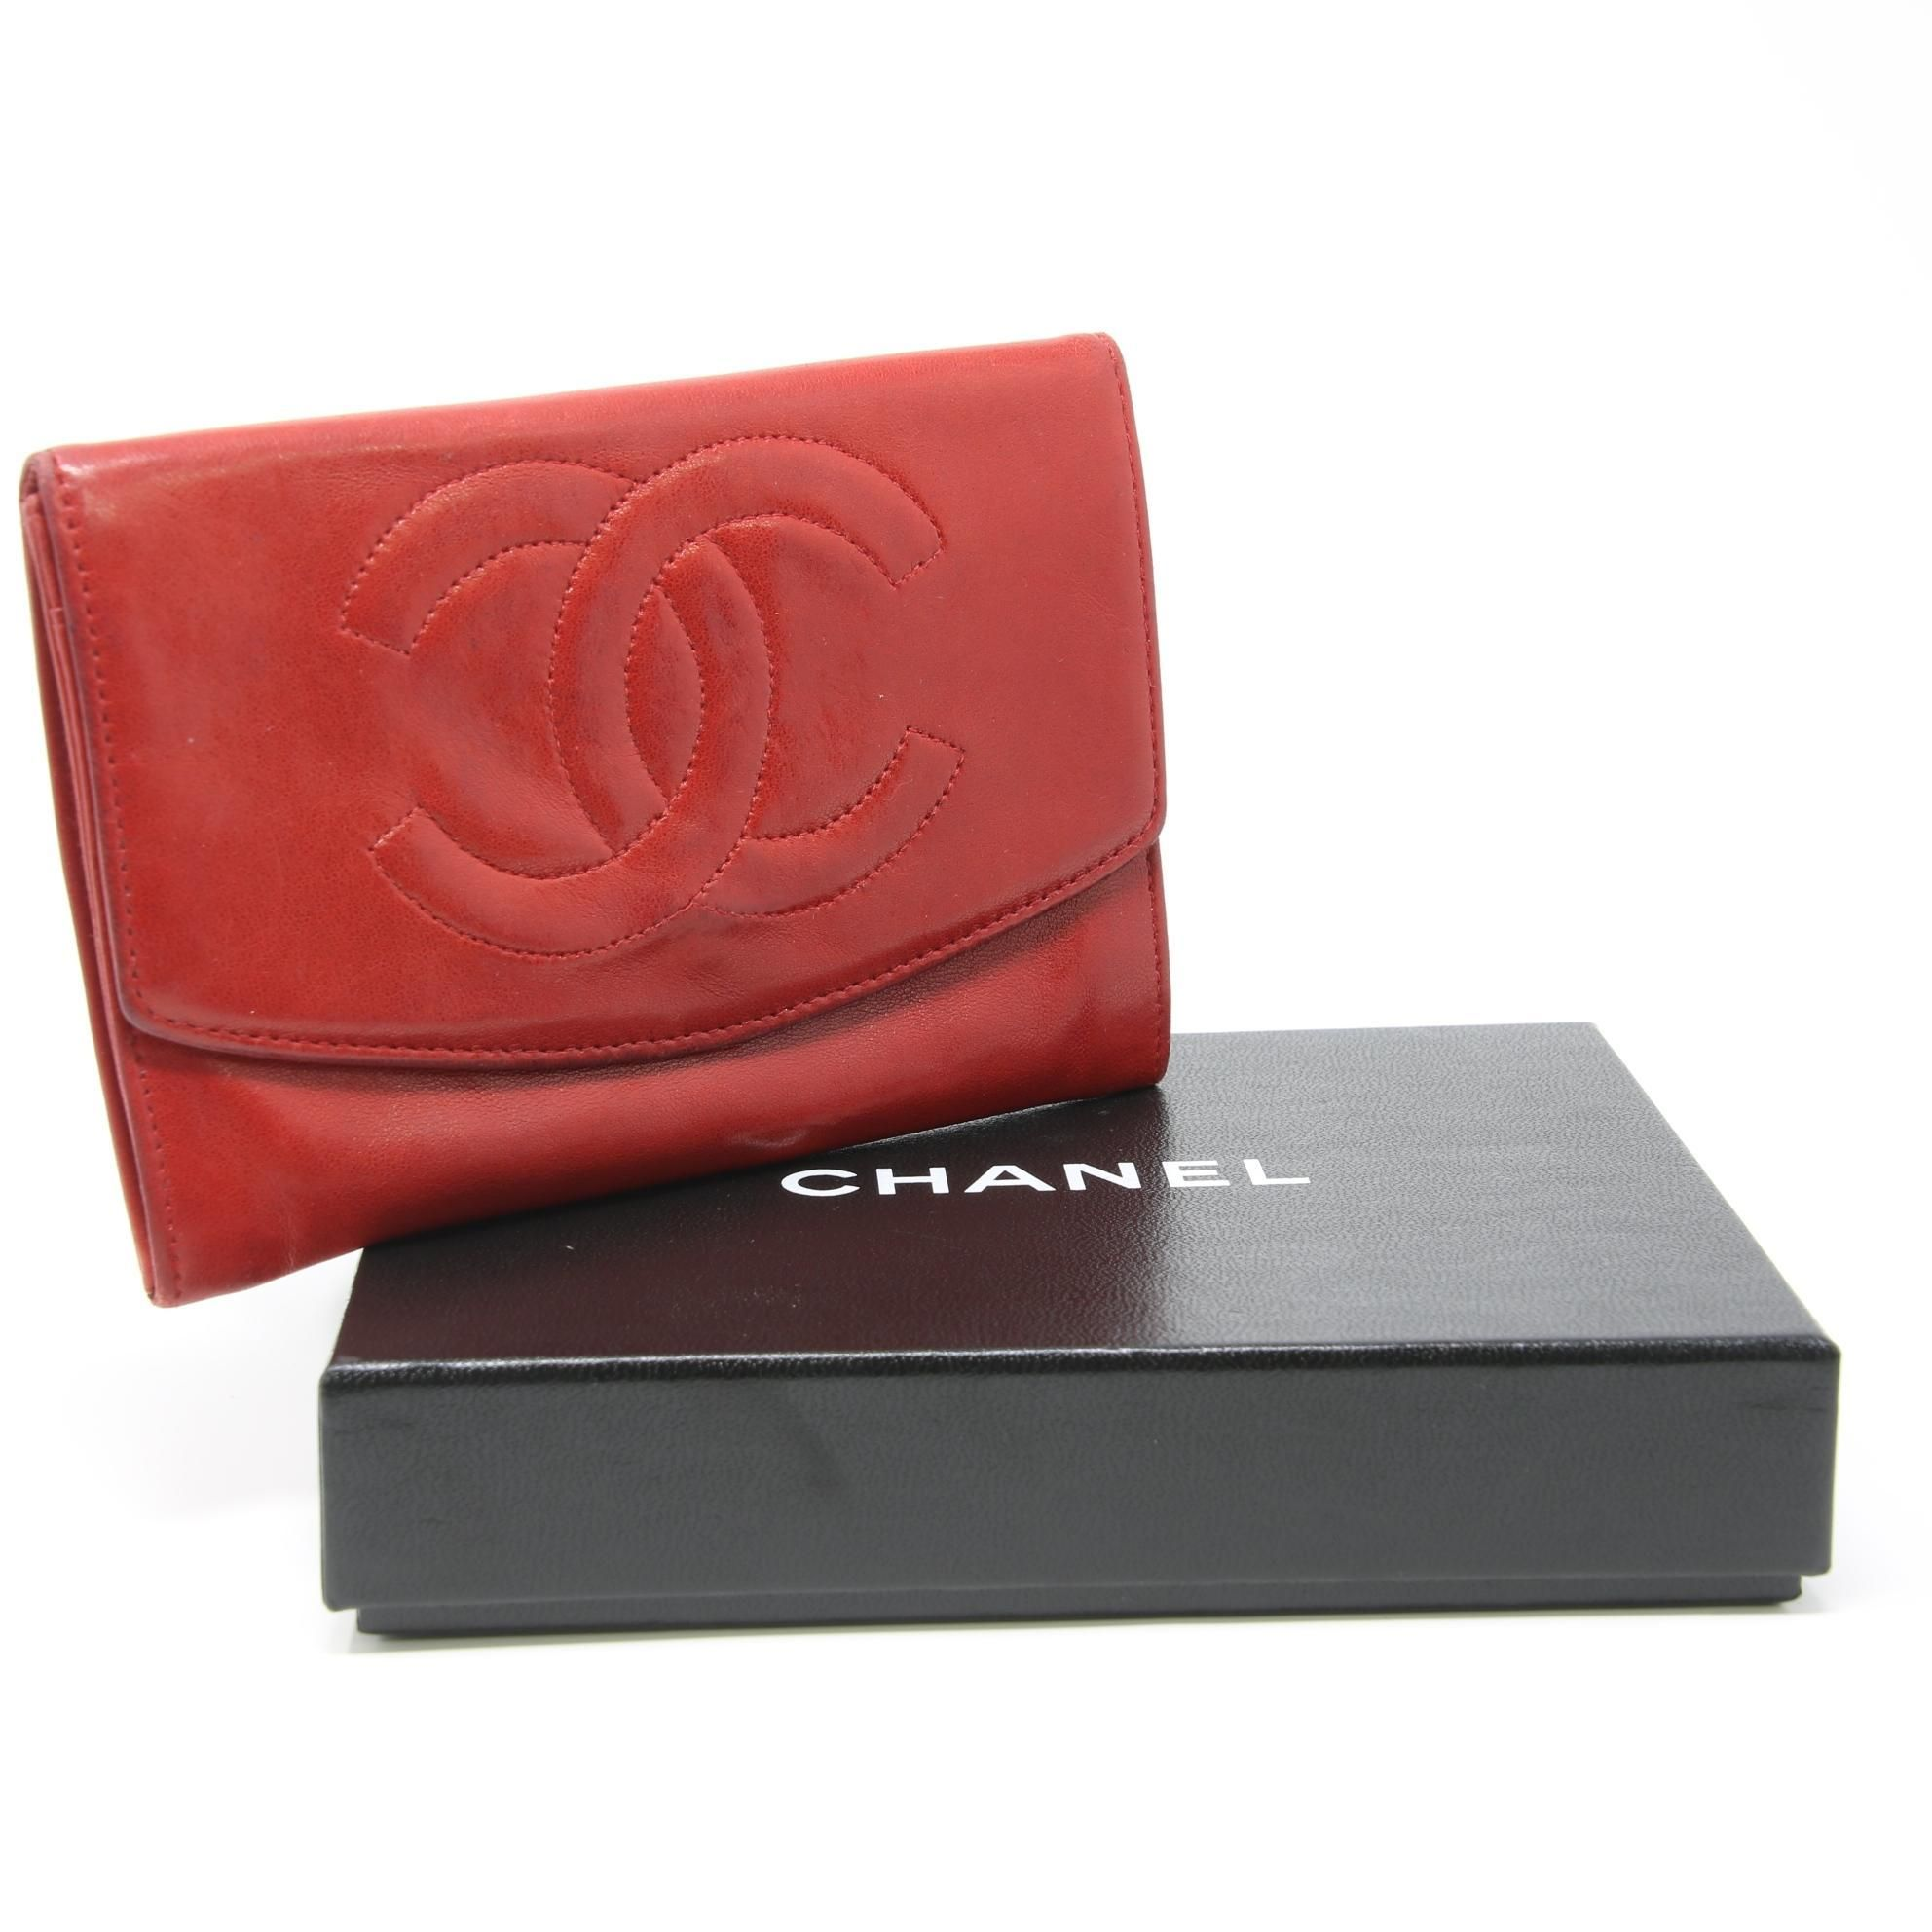 12a7a4d8 Chanel Red Large CC Logo Lambskin Leather Flap Bifold Wallet in 2018 ...